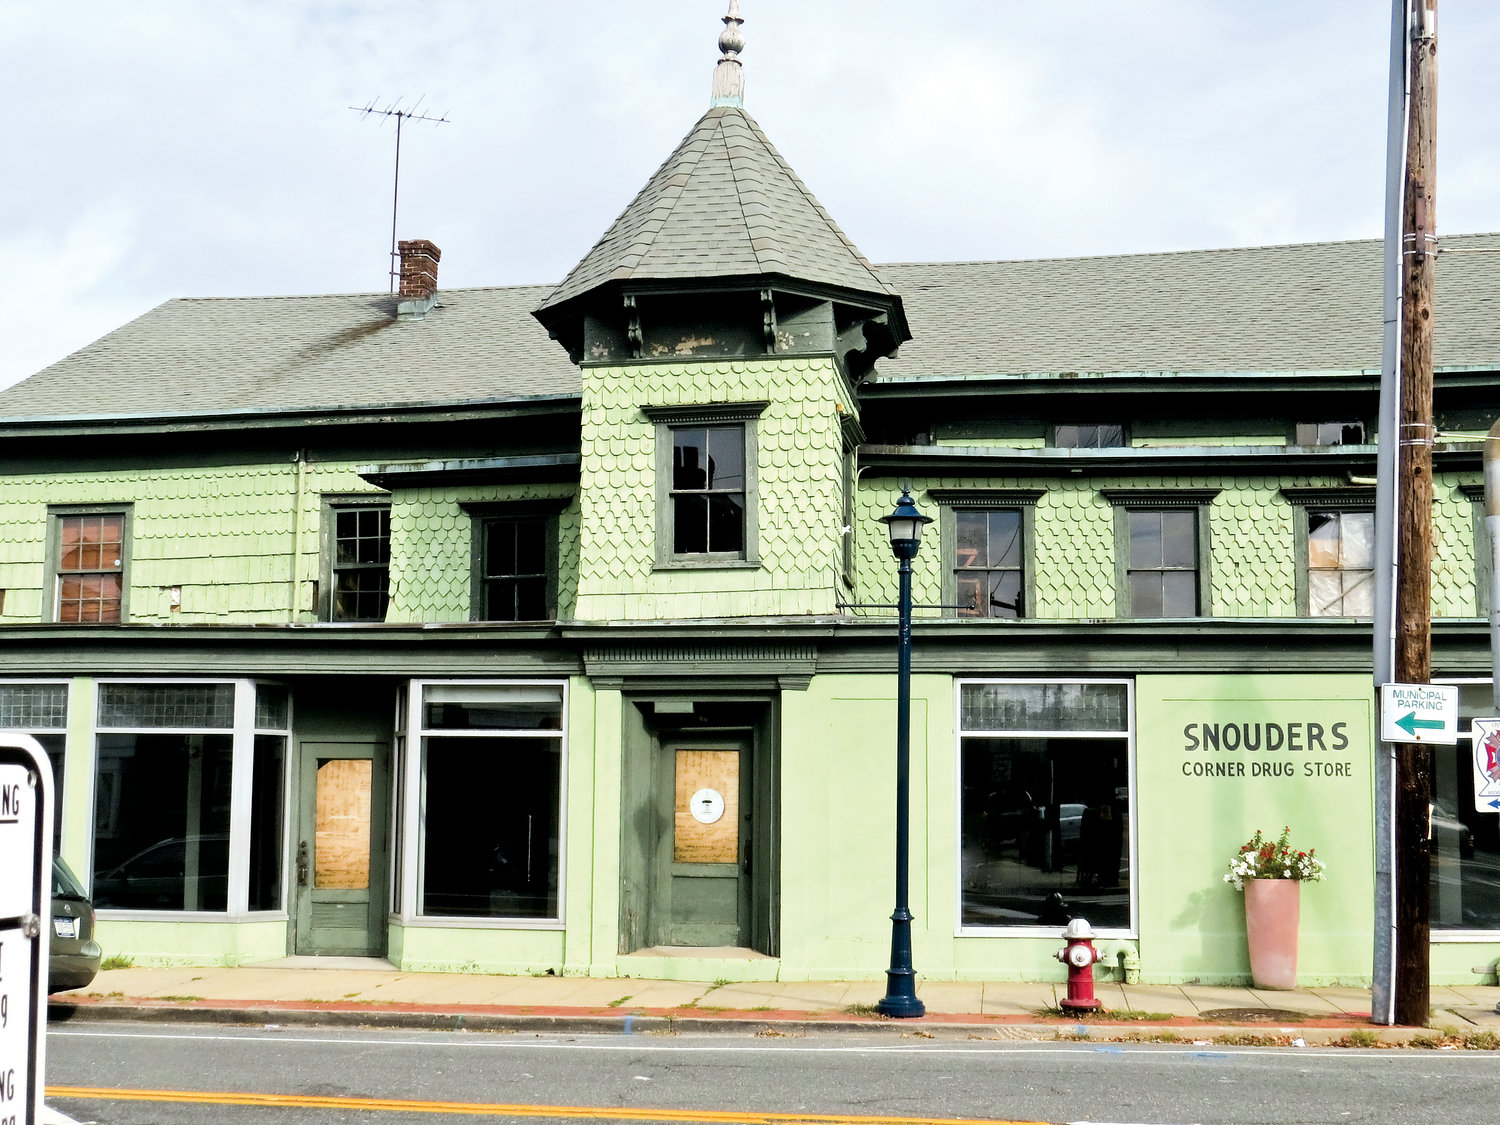 Snouder's Corner Drug Store is a landmark in dire need of repair, which preservationists say would be well worth the effort.